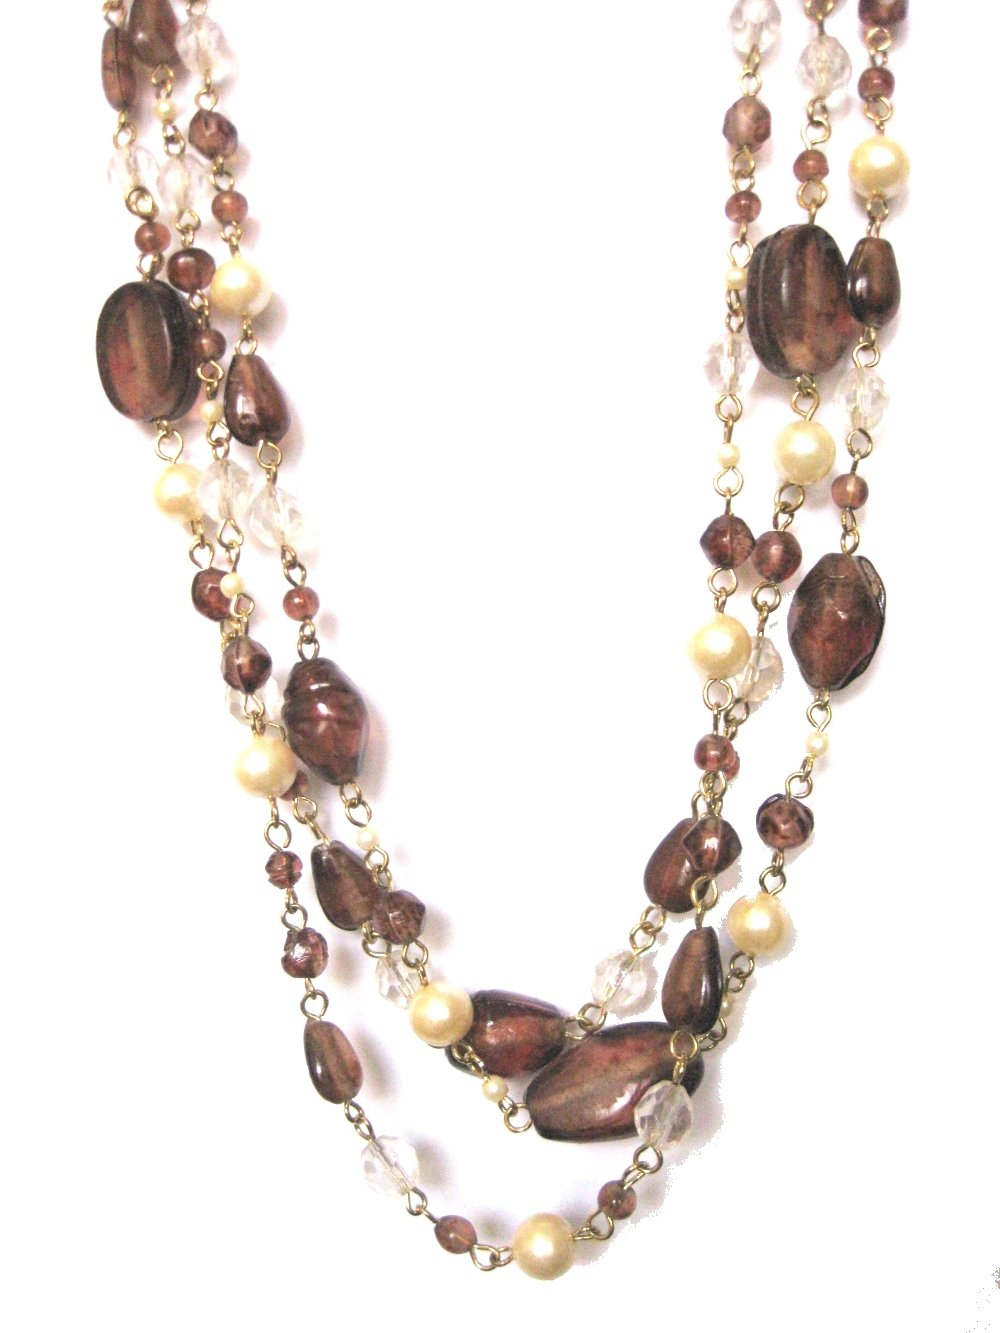 ZAD Multi-Strand Faux-Pearl and Glass Bead Layered Necklace, 18'' - 20'' (Gift-Ready) (Brown)